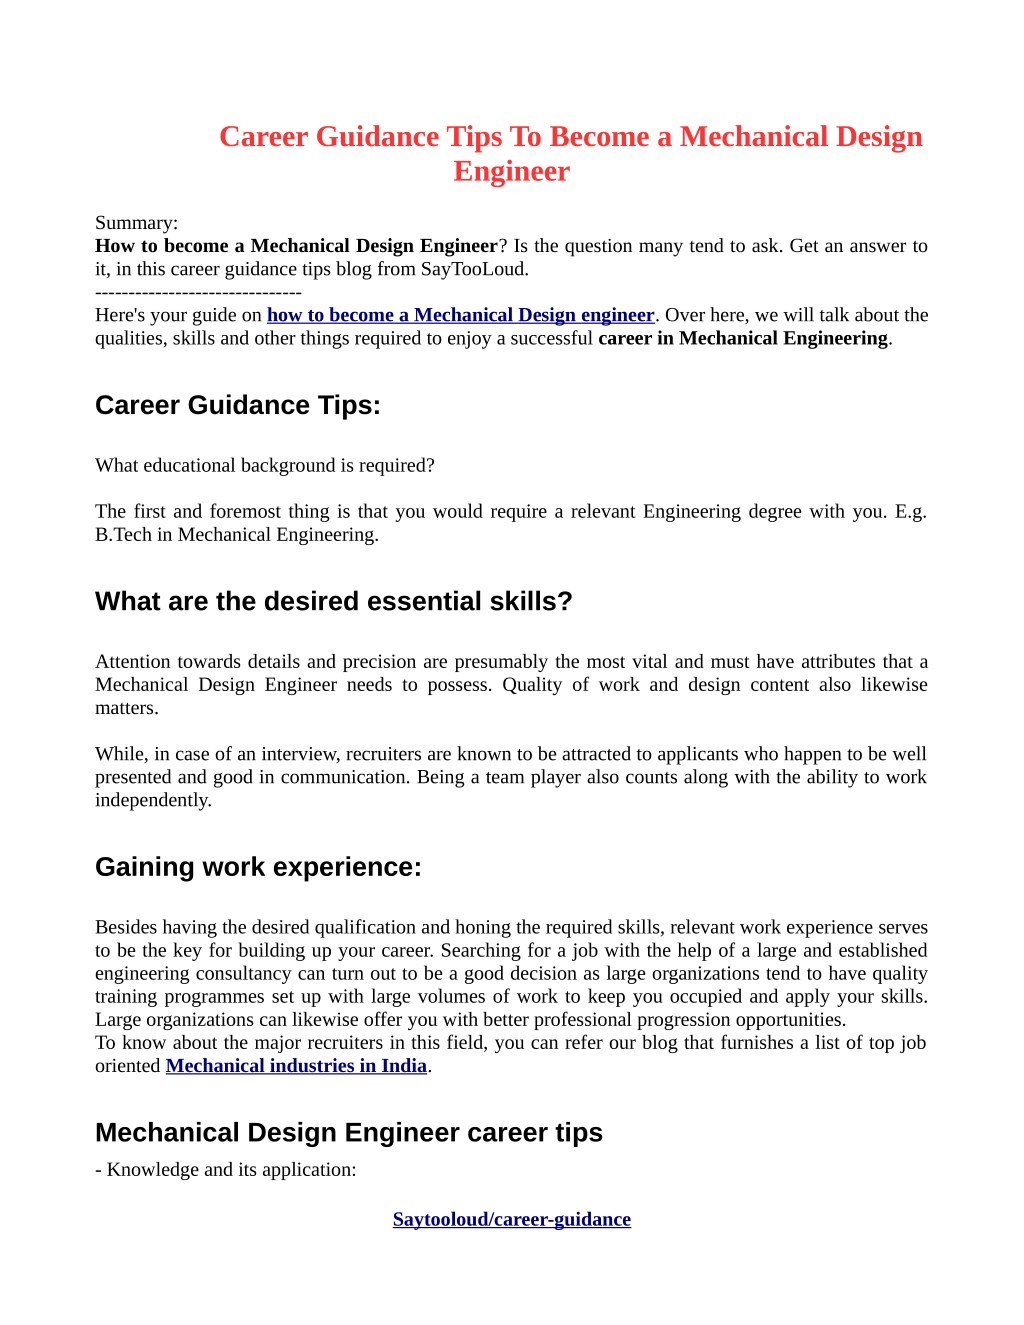 Ppt Career Guidance Tips To Become A Mechanical Design Engineer Powerpoint Presentation Id 7935221